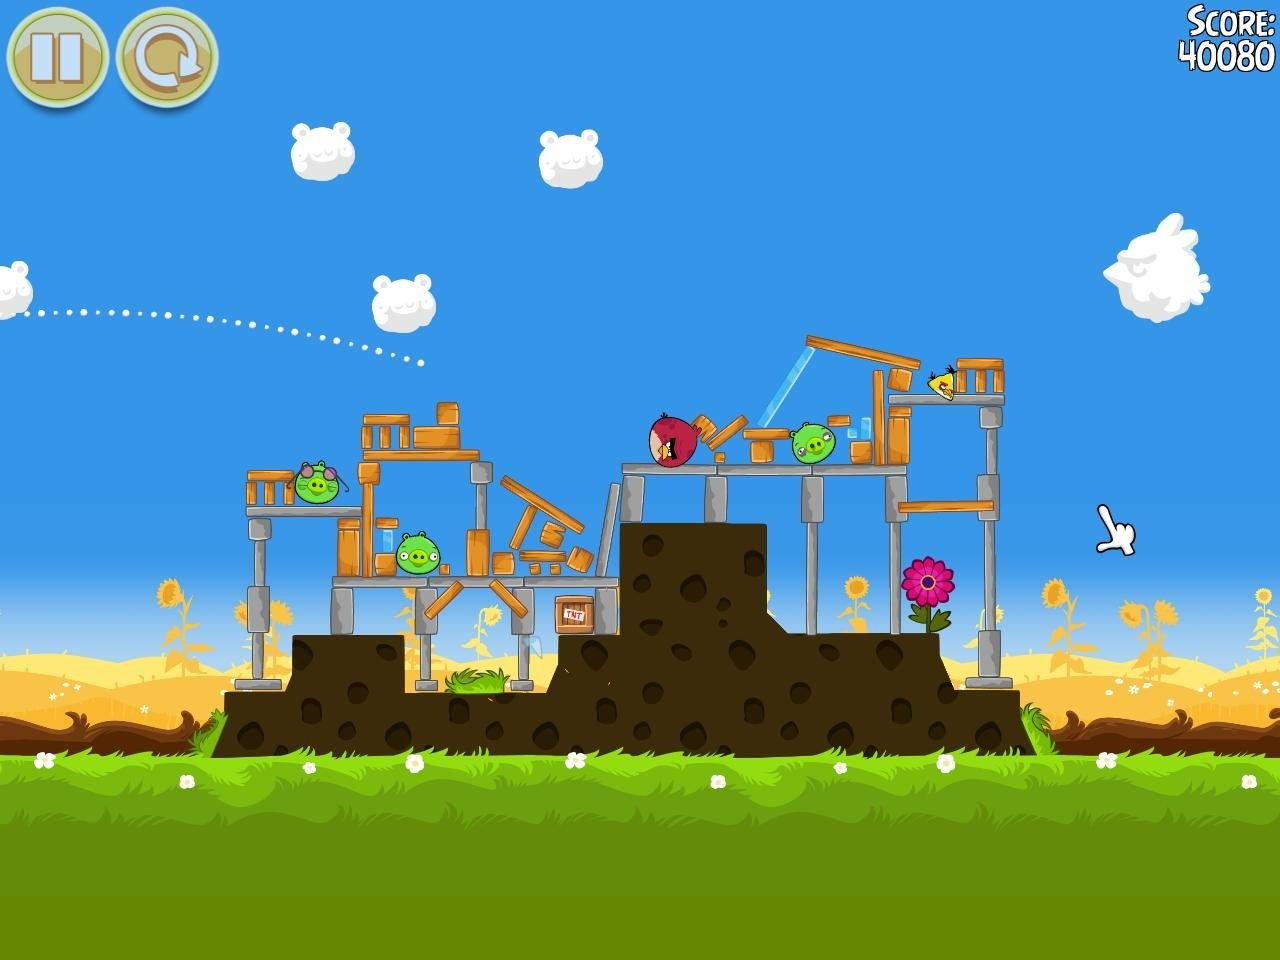 Download new angry birds free 1. 0 12 new levels for iphone, ipad.